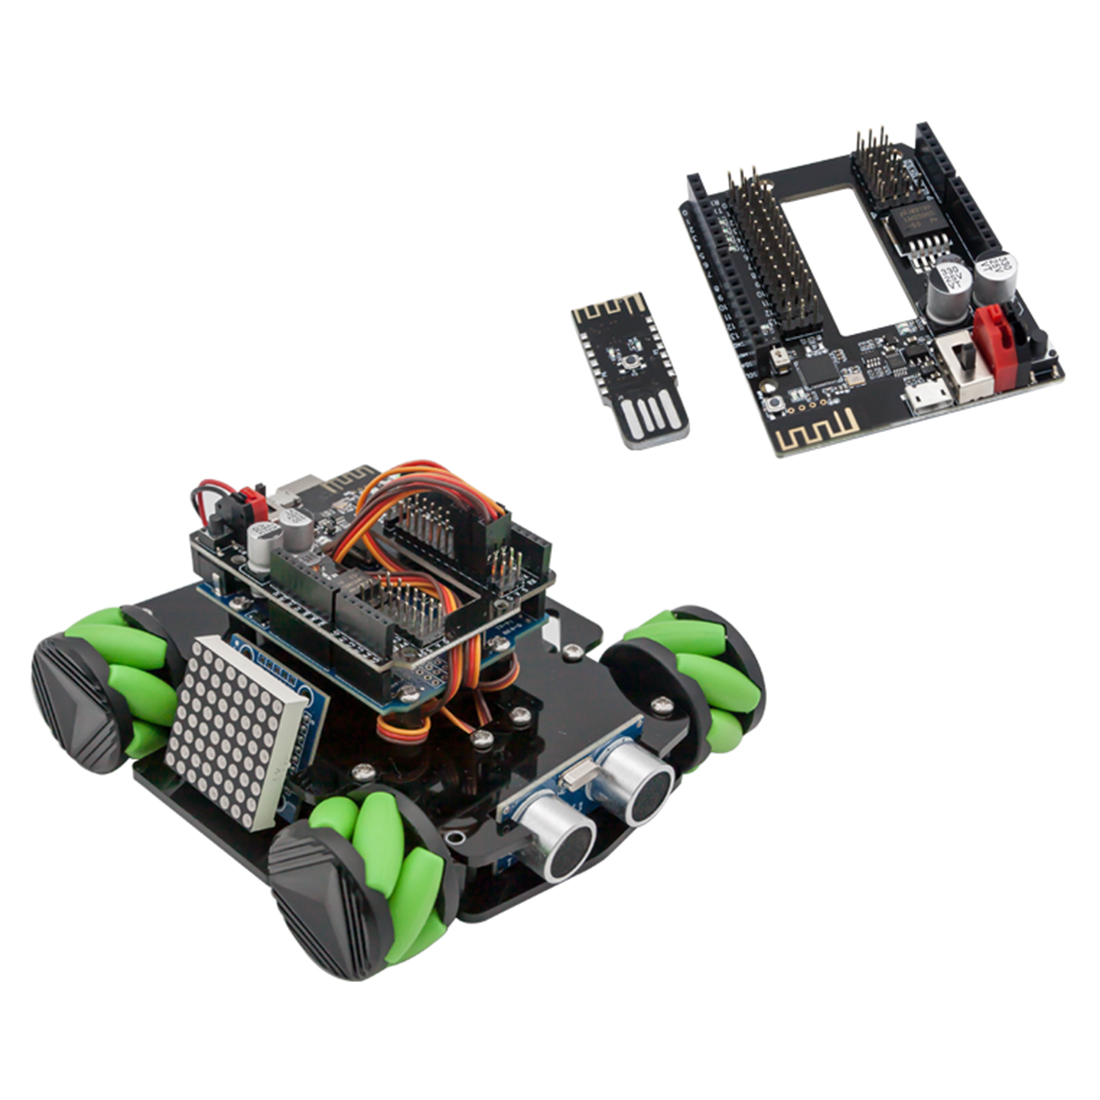 1pcs DIY Obstacle Avoidance Smart Programmable Robot Car Educational Learning Kit with Mecanum Wheels for Arduino UNO - Set D